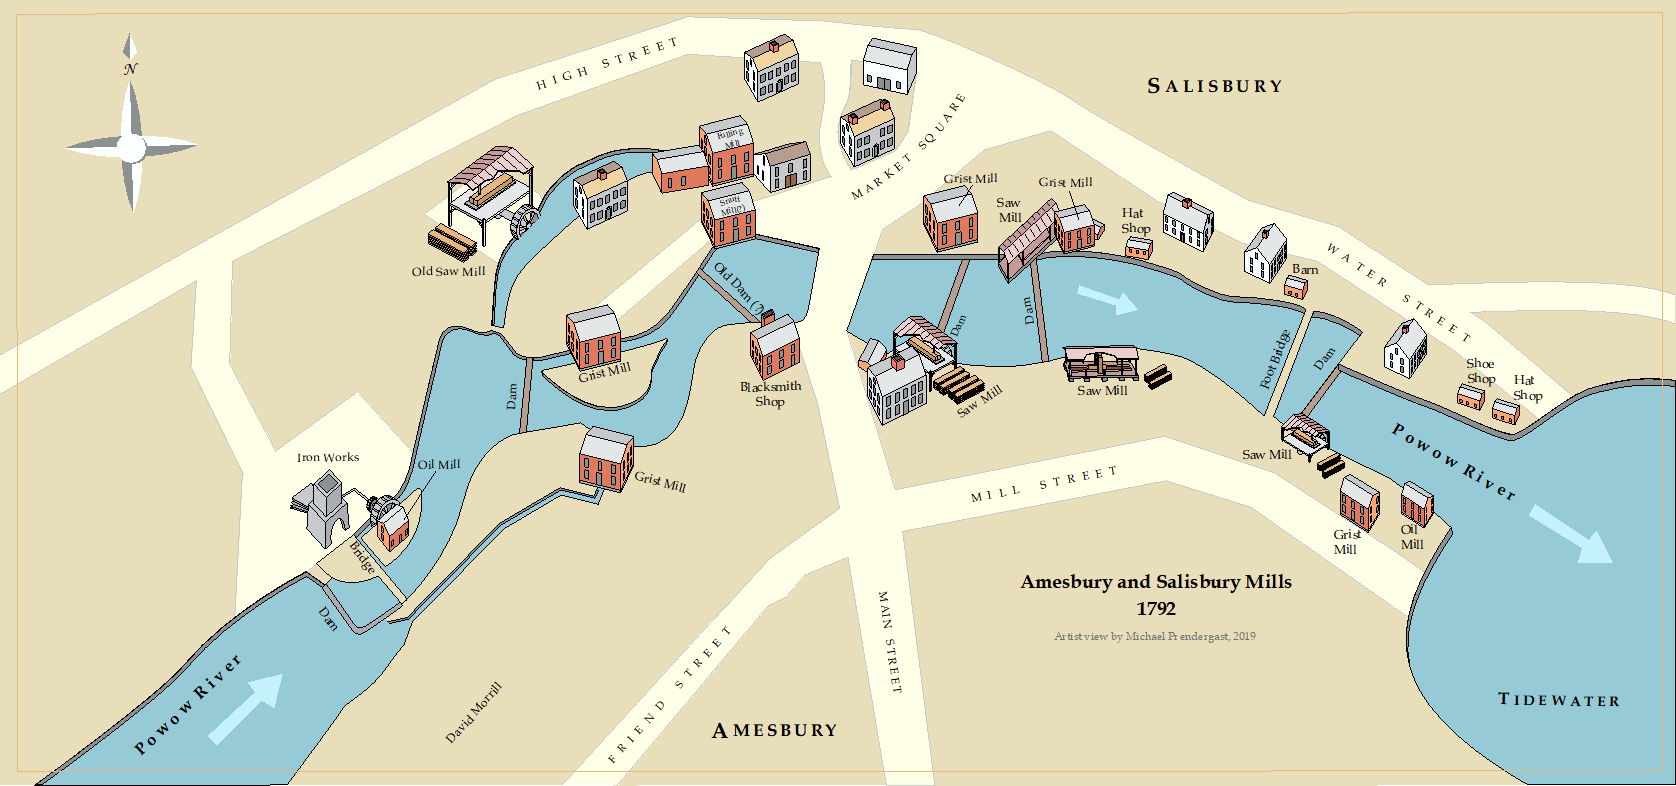 This view shows the millyard in an early, industrial state. Local owners operated mills of different types including 5 sawmills, 7 gristmills, 2 oil mills, a snuff mill and an iron works. The range and density is unique to the region and distinguished Amesbury from other communities. Ownership of a mill privilege allowed the use of the water flow in the river. The types and locations of the mills were determined by deed research and through published descriptions.